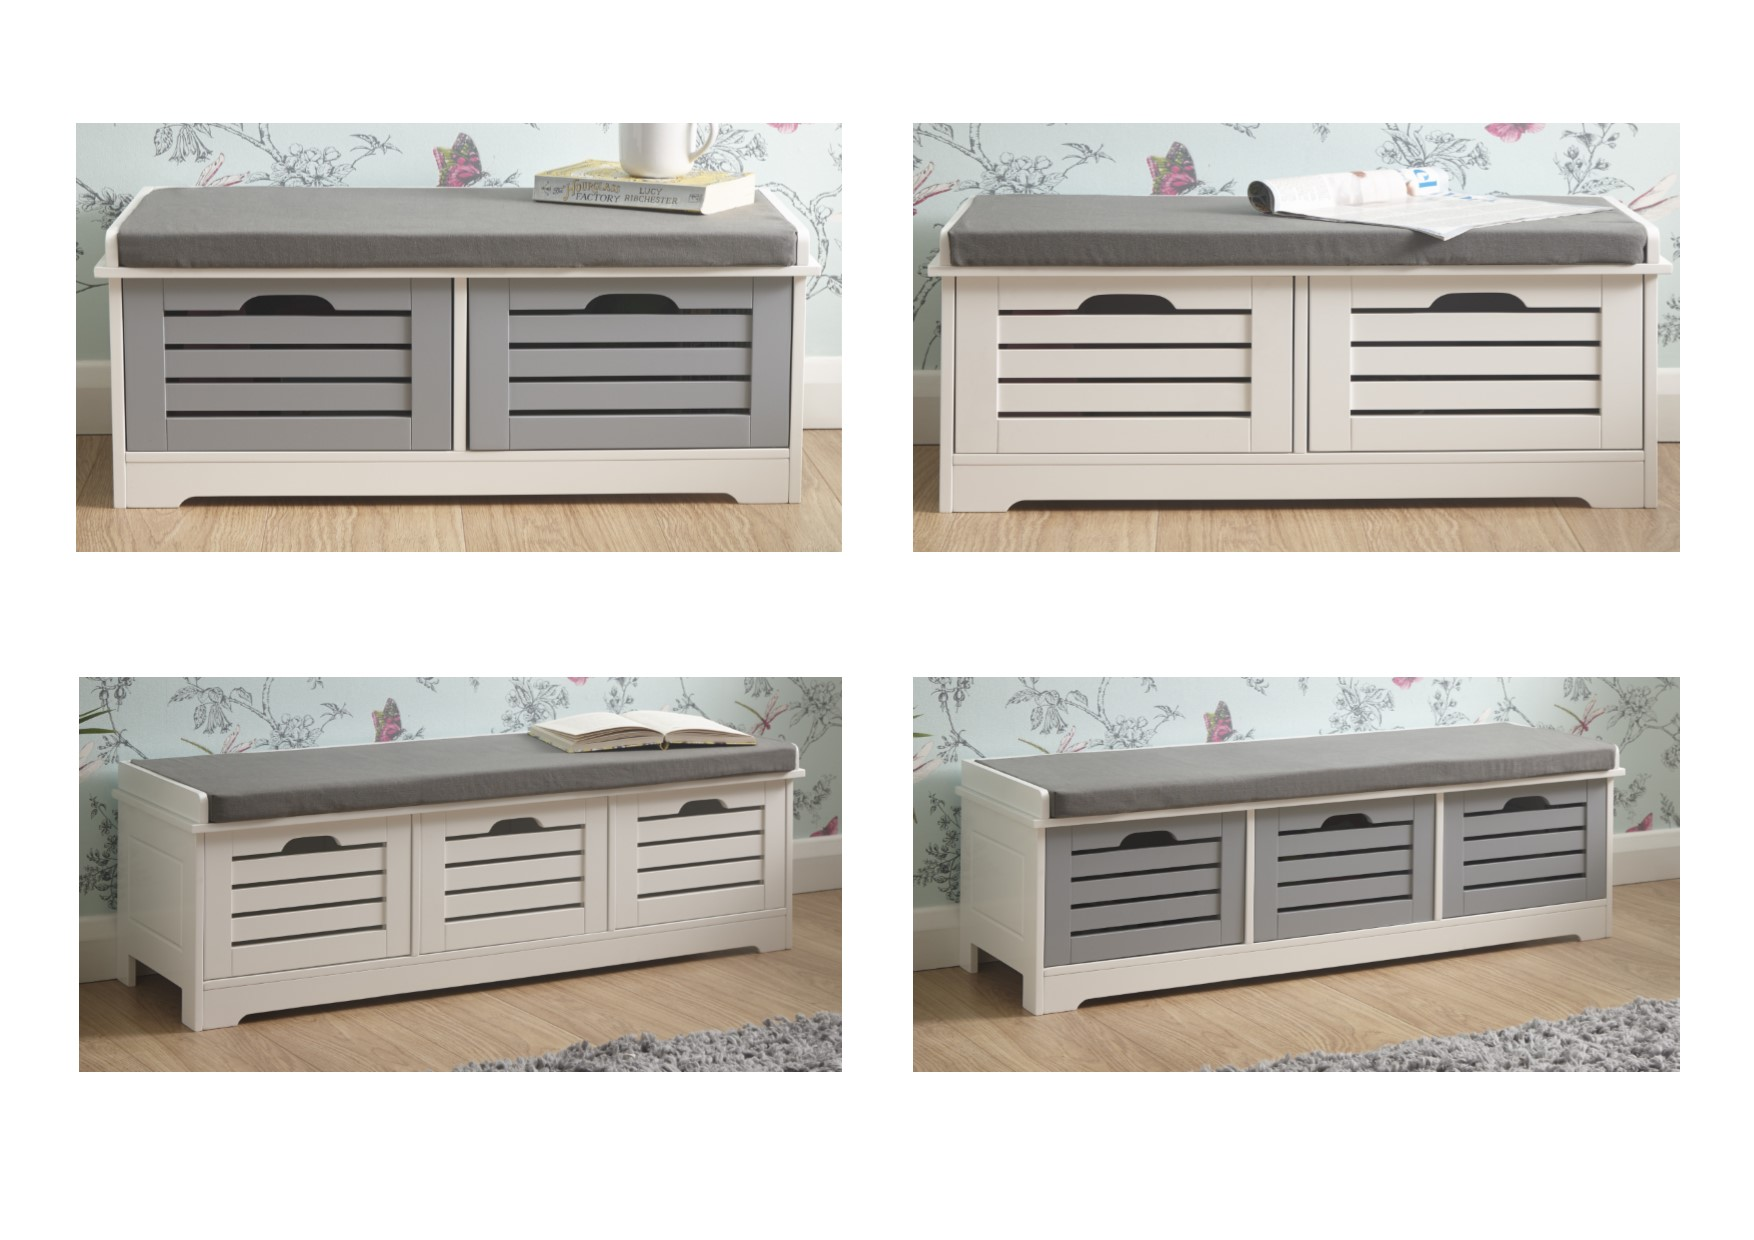 Cavendish Shoe Storage Bench Cabinet Small Or Large Grey White